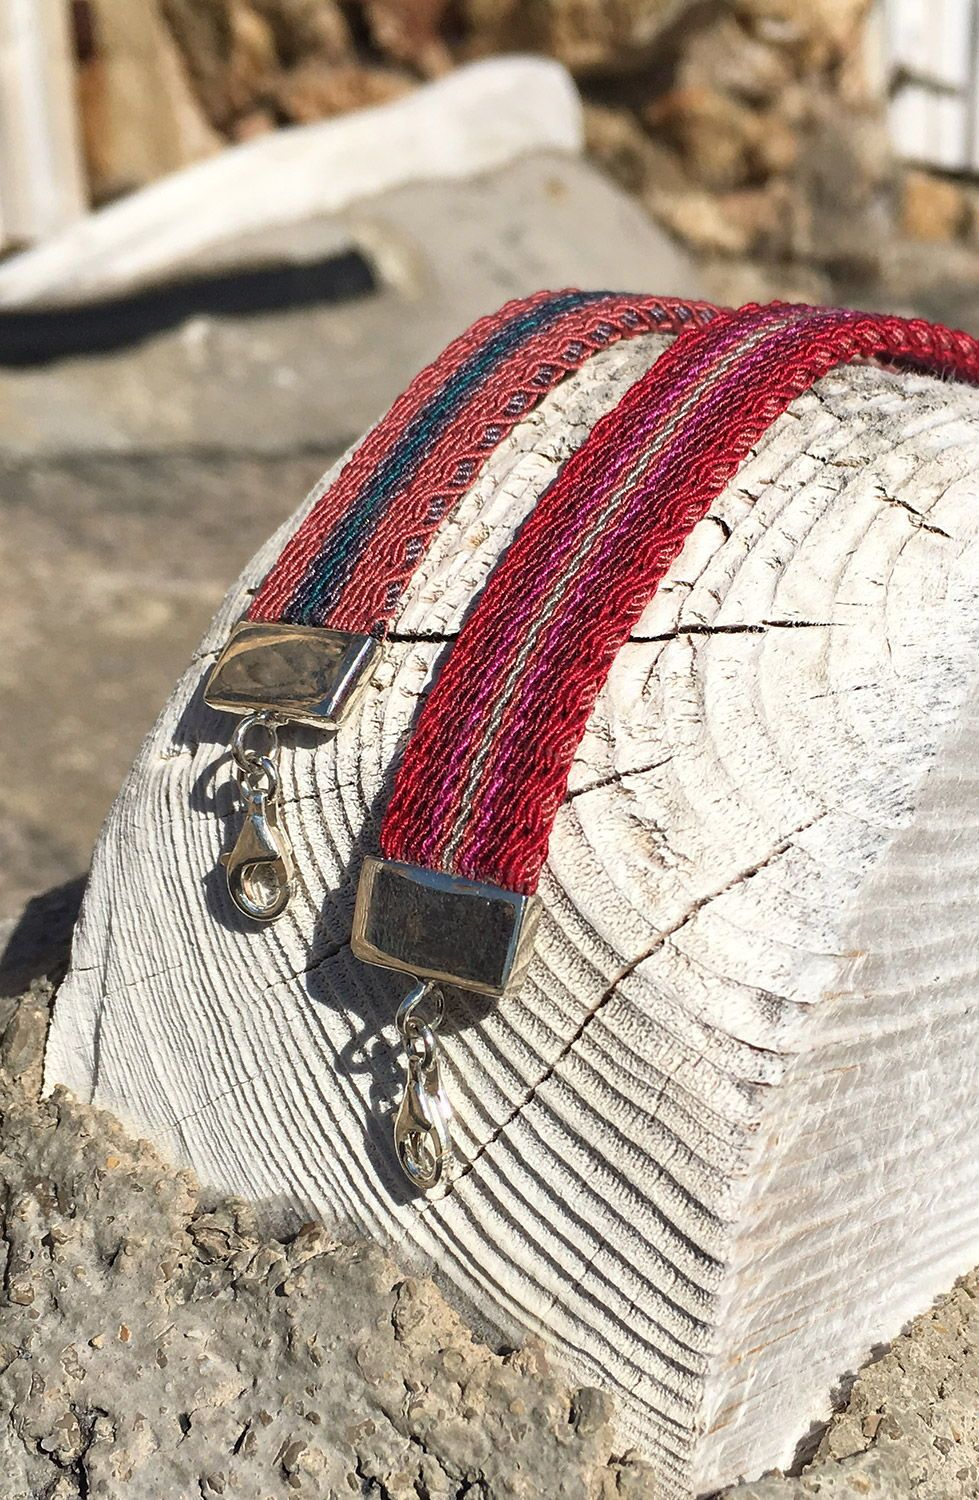 Lhoum handwoven jewelry for men and women made in silk and